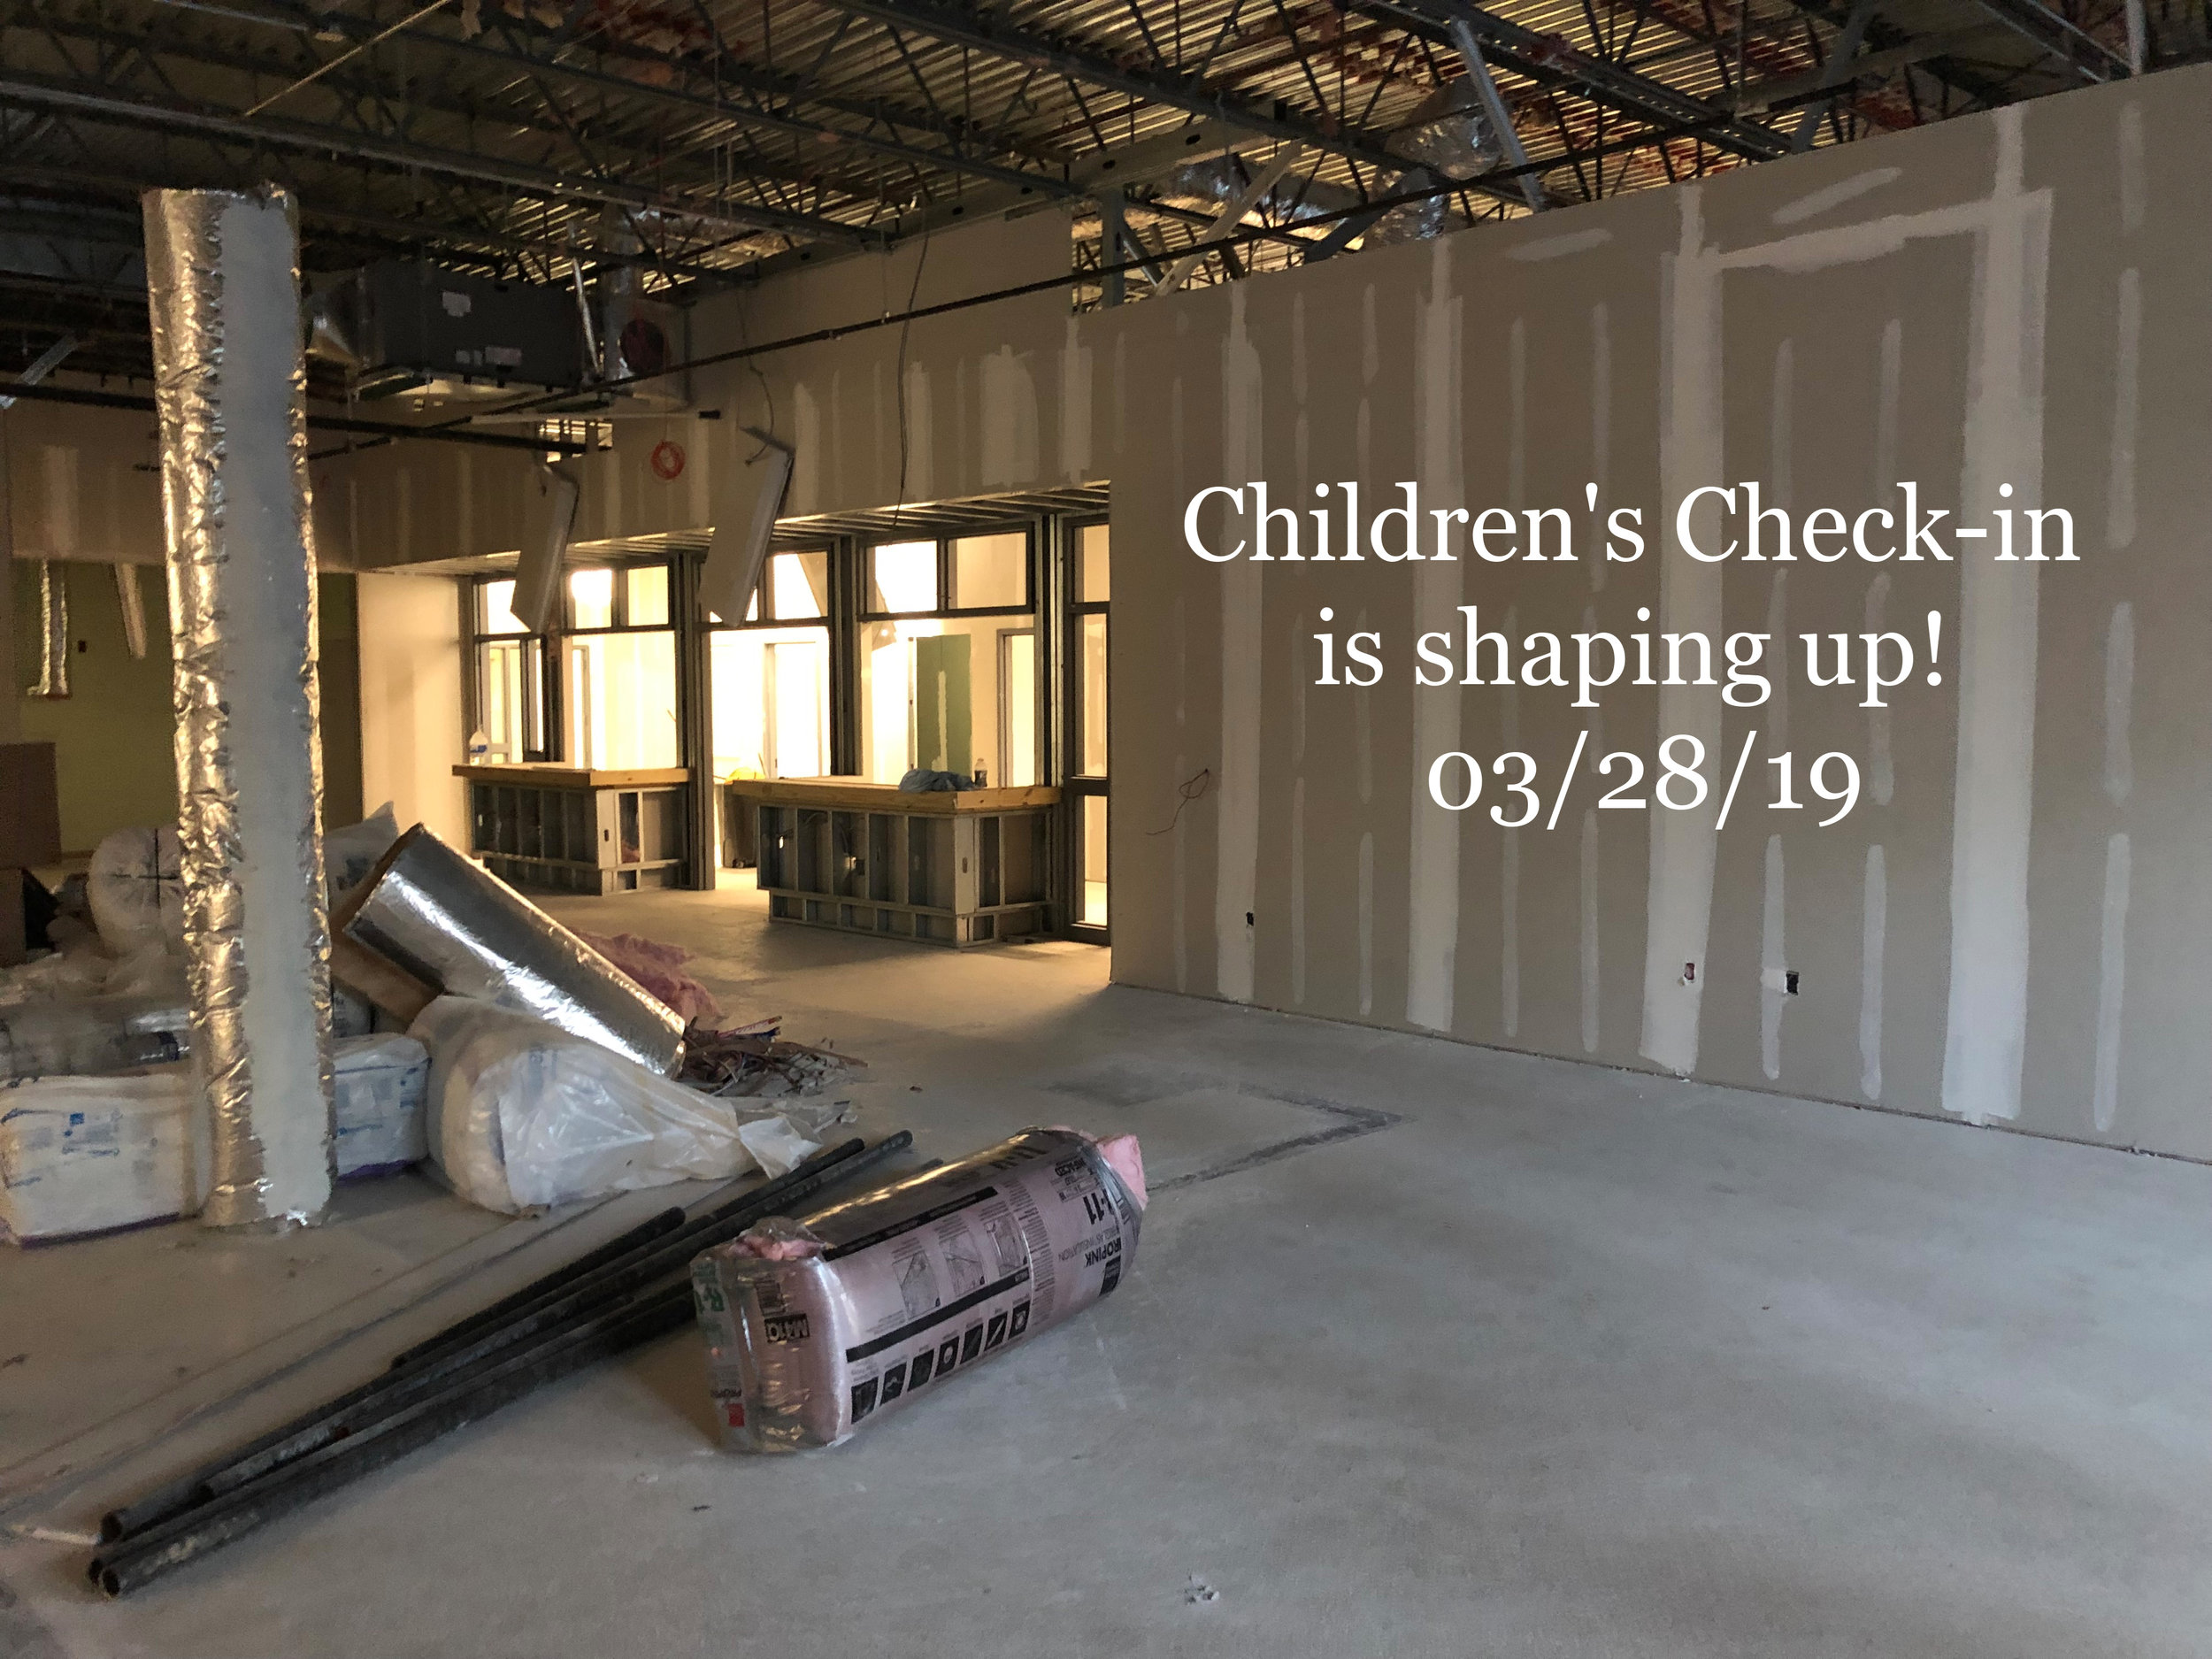 Children's Check-in - 03.28.19.jpg